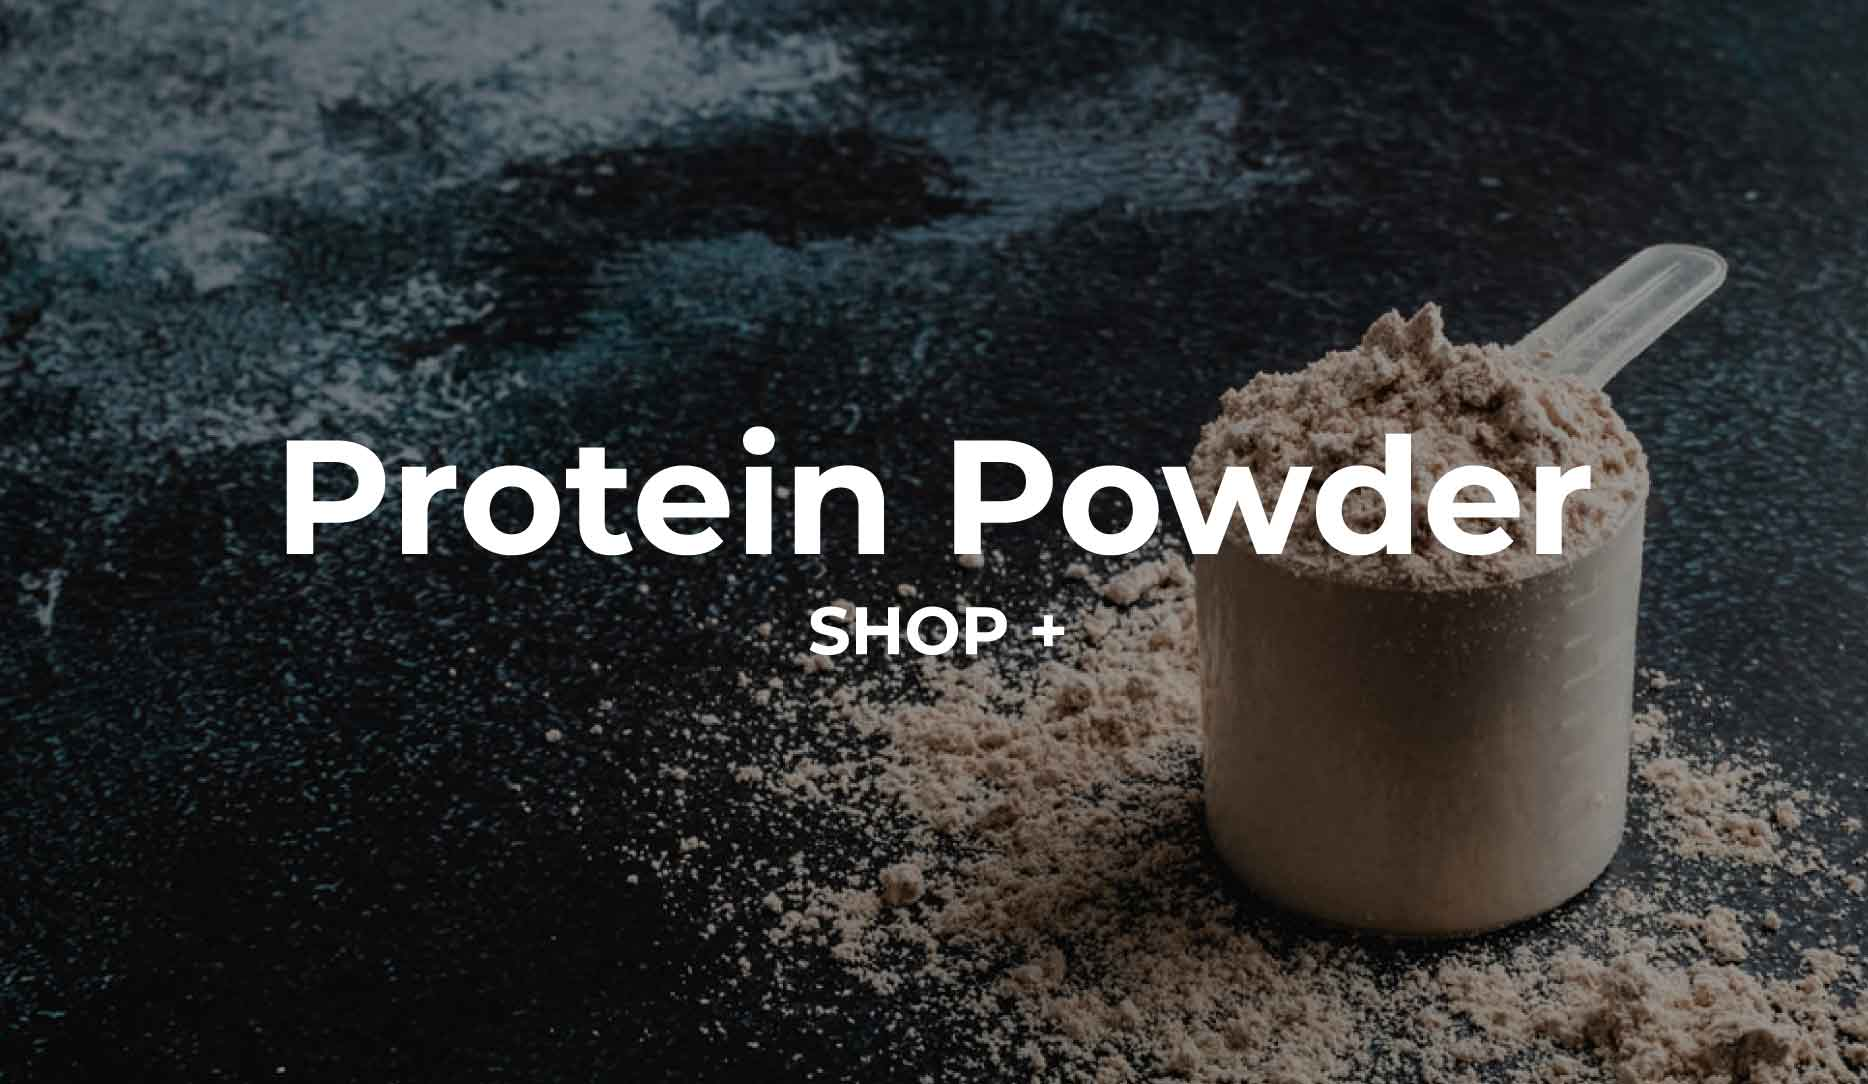 Shop protein powder